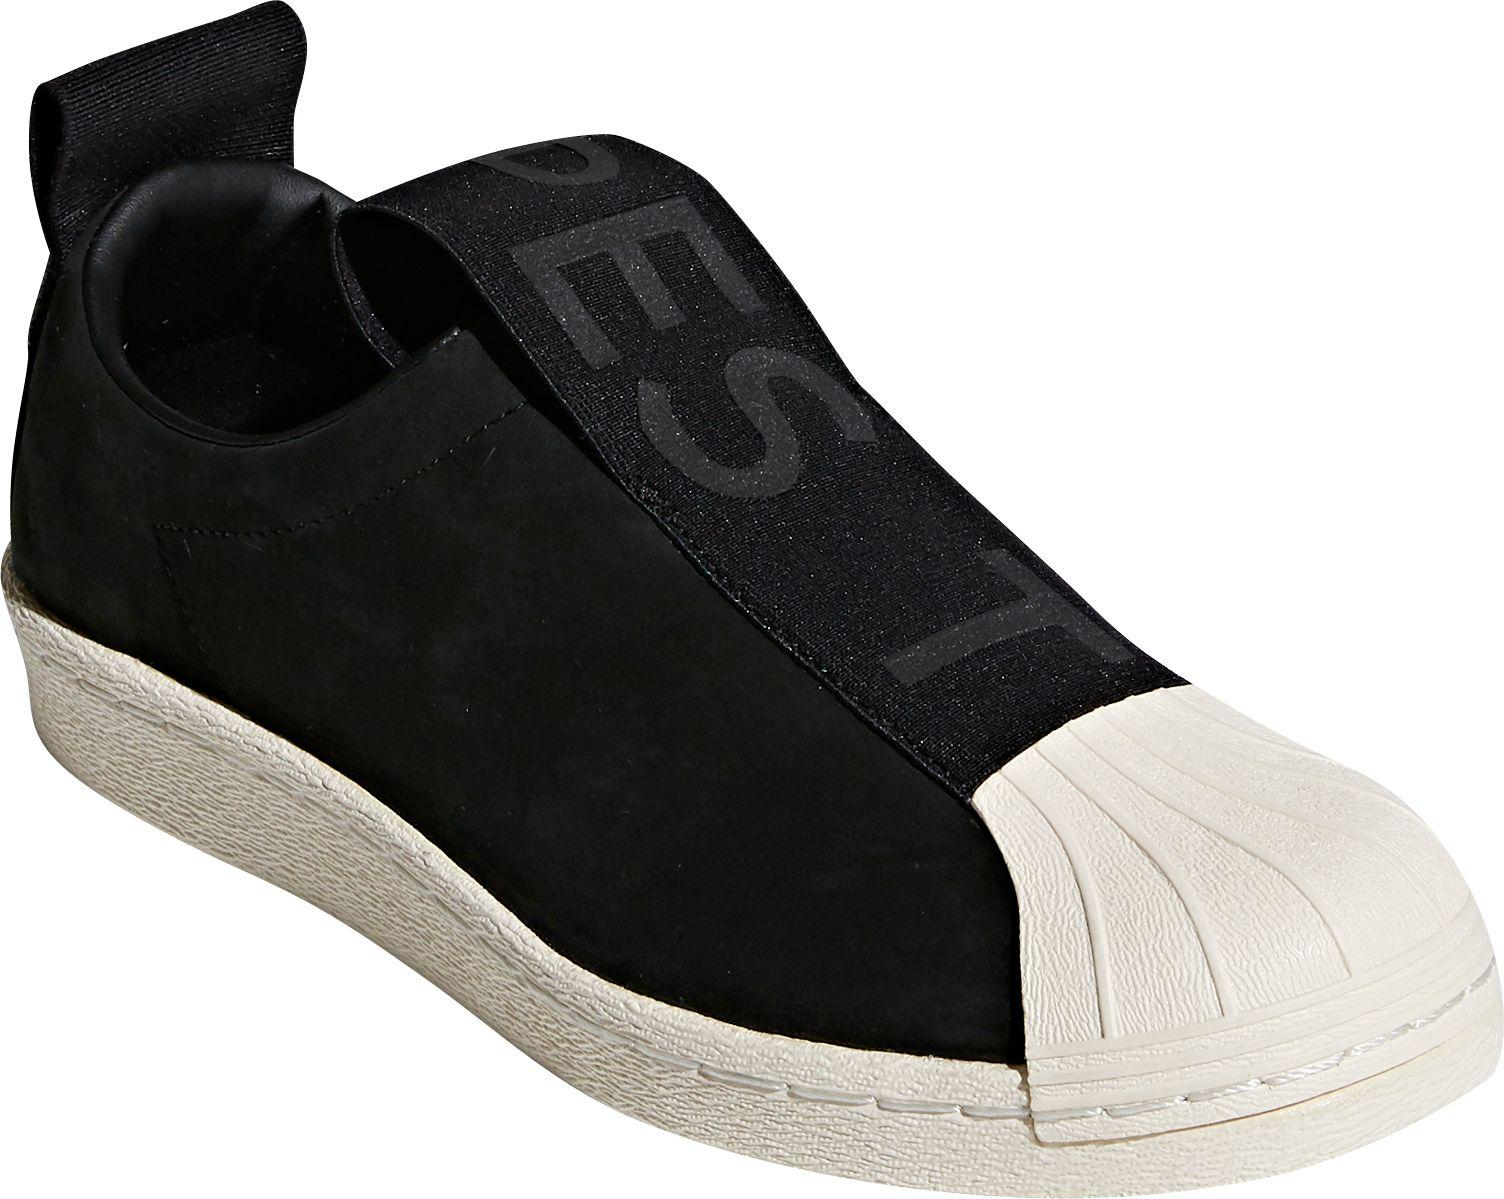 a89b5d2b3 Lyst - adidas Originals Adidas Superstar Slip-on Shoes in Black